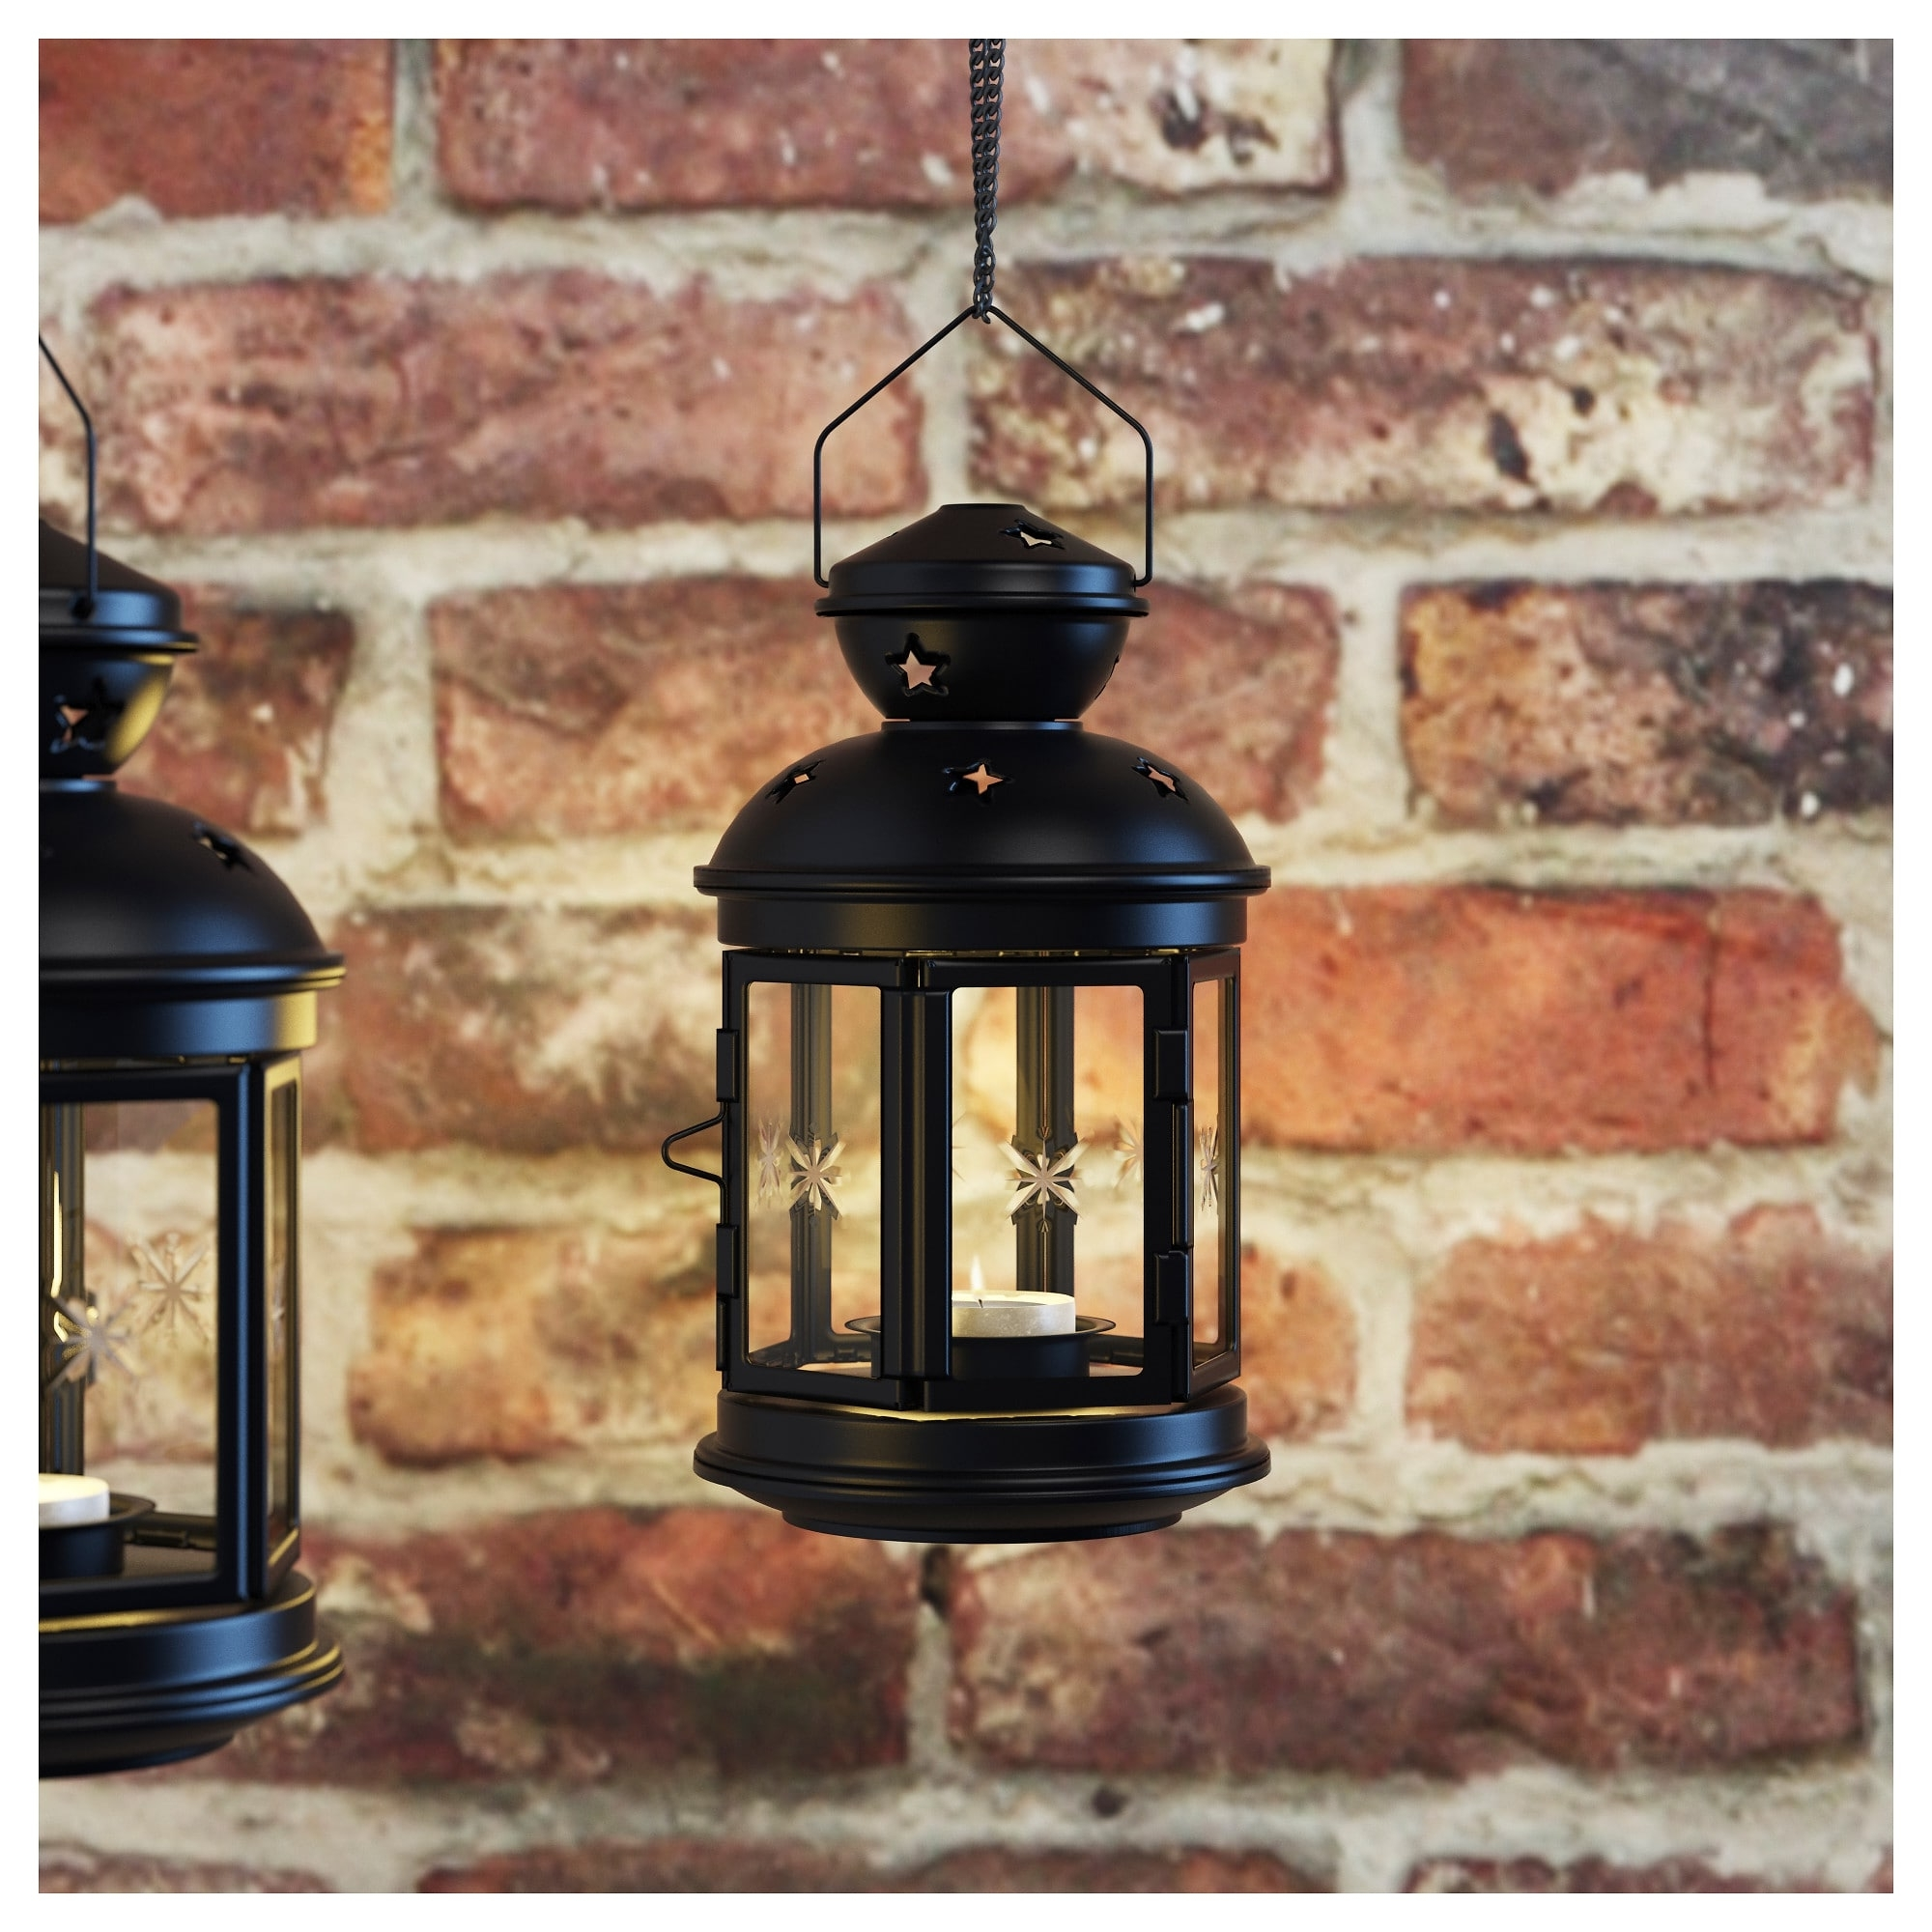 Ikea Outdoor Lanterns With Regard To Recent Rotera Lantern For Tealight In/outdoor Black 21 Cm – Ikea (View 11 of 20)